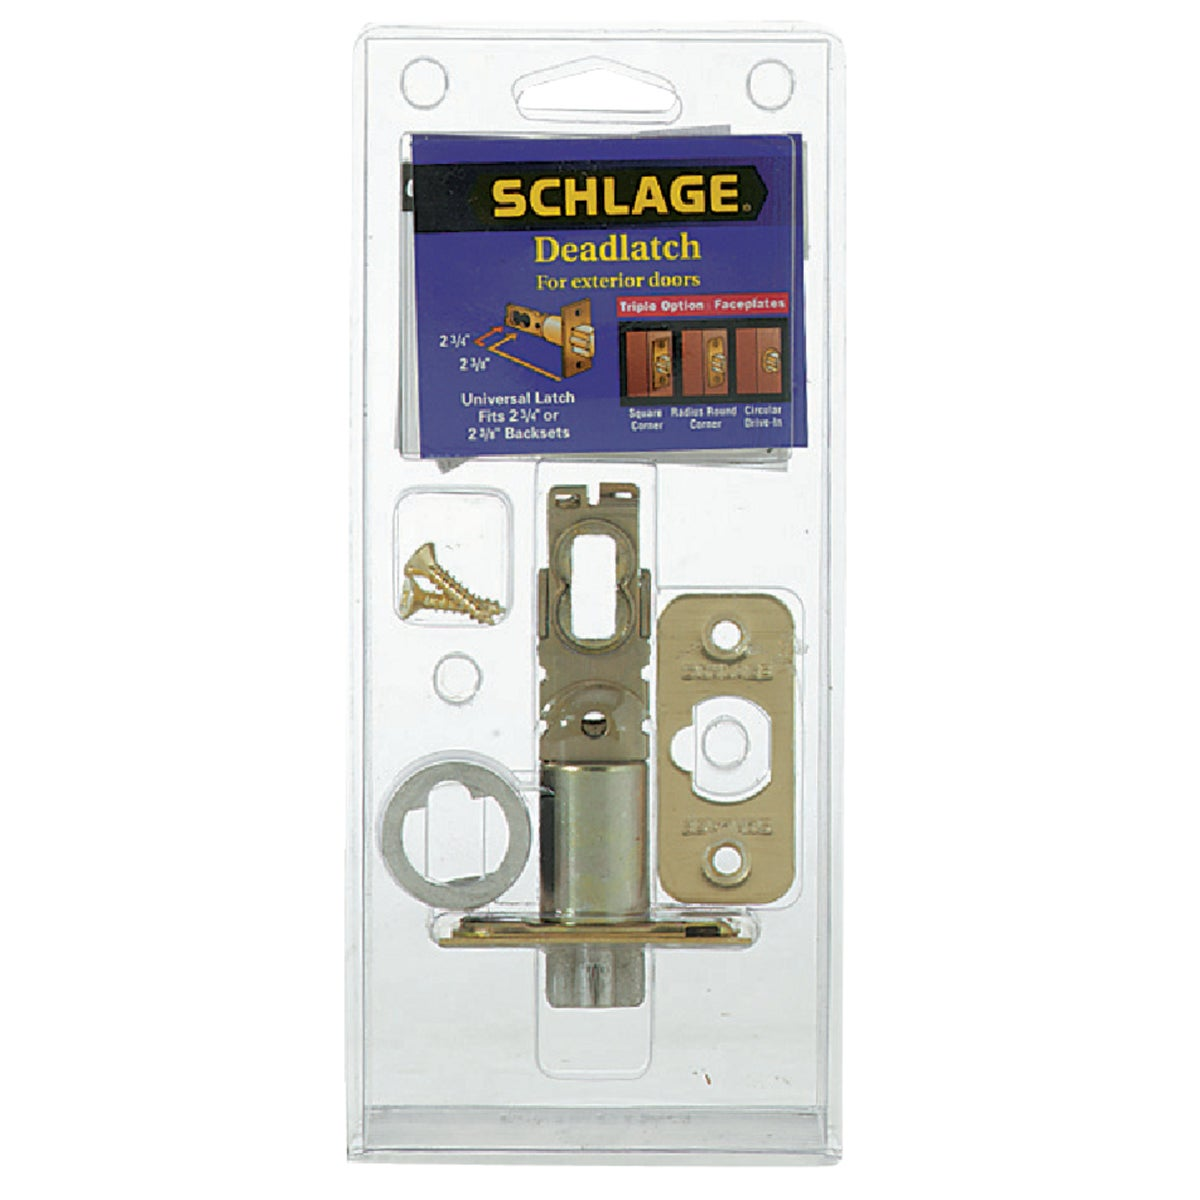 "Item 231789, Replaces 1"" square corner, 1/4"" round corner, or 1"" circular drive-in. For Schlage F series entry locksets. Adjustable backsets."